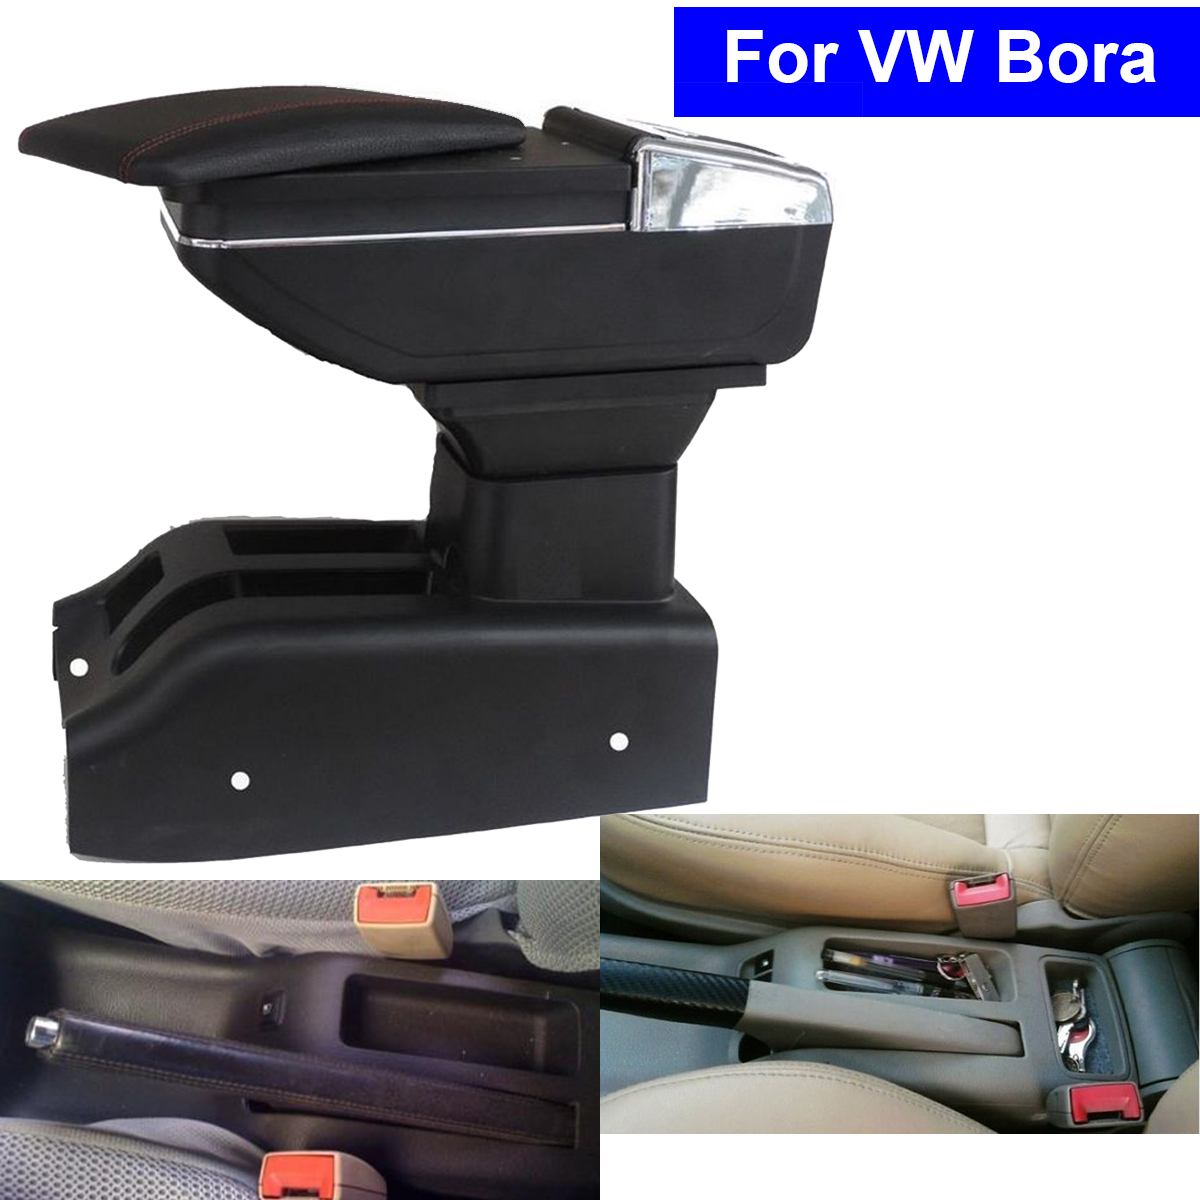 ФОТО Leather Car Center Console Armrest Storage Box for Volkswagen VW Bora 2001 ~ 2006 2007 2008 2009 2010 Armrests Free Shipping